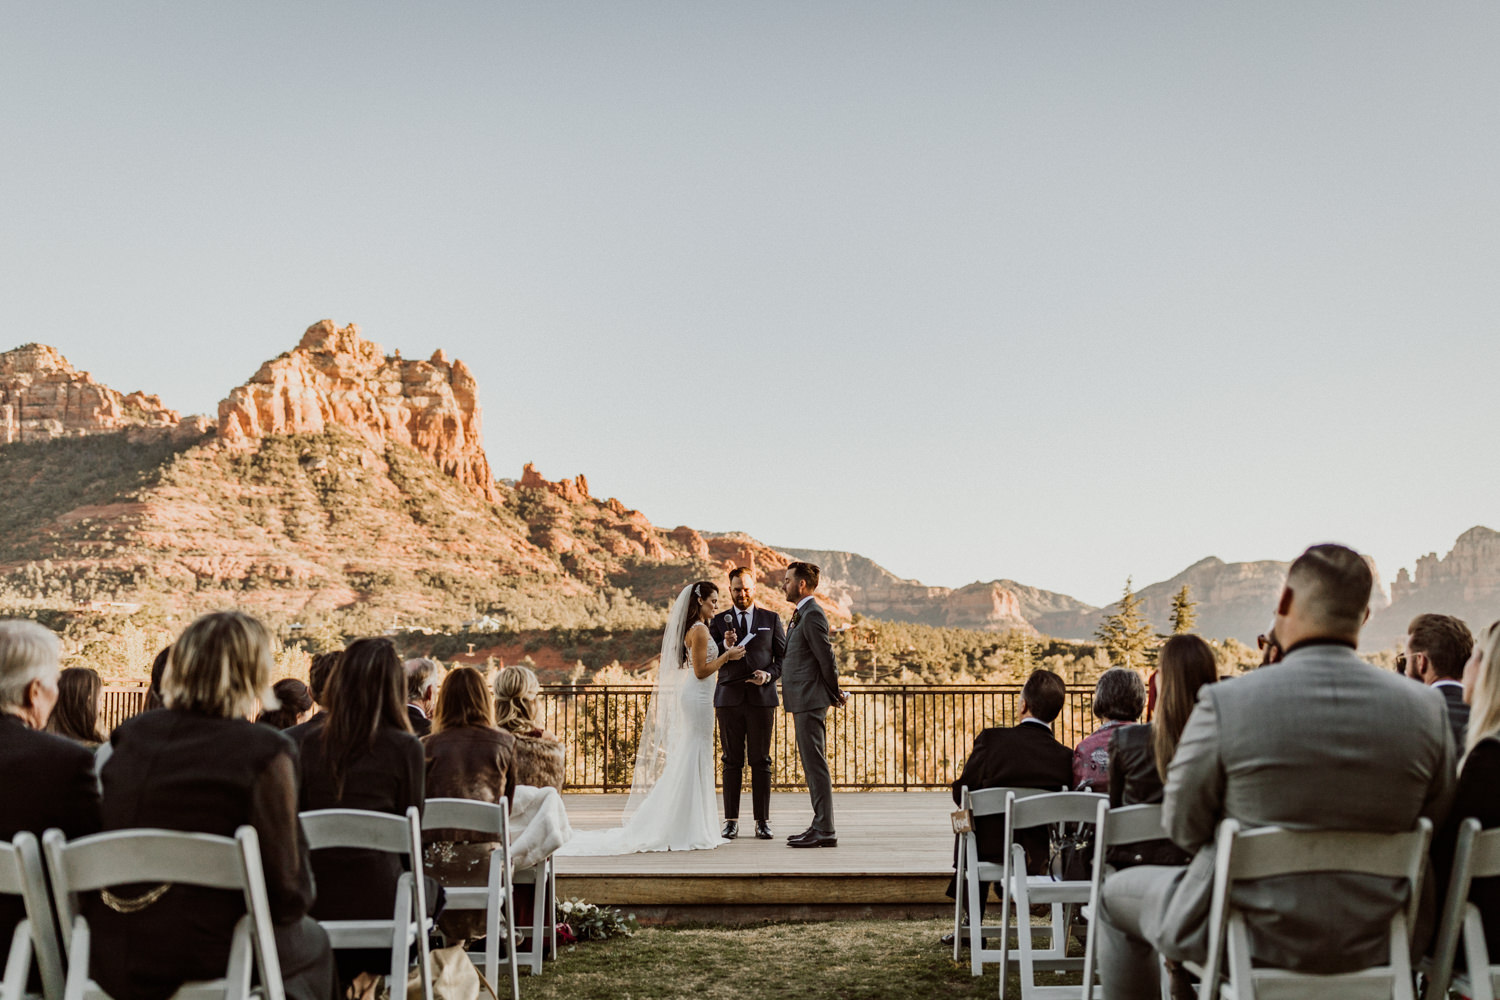 26_intimate-sedona-arizona-wedding-38.jpg